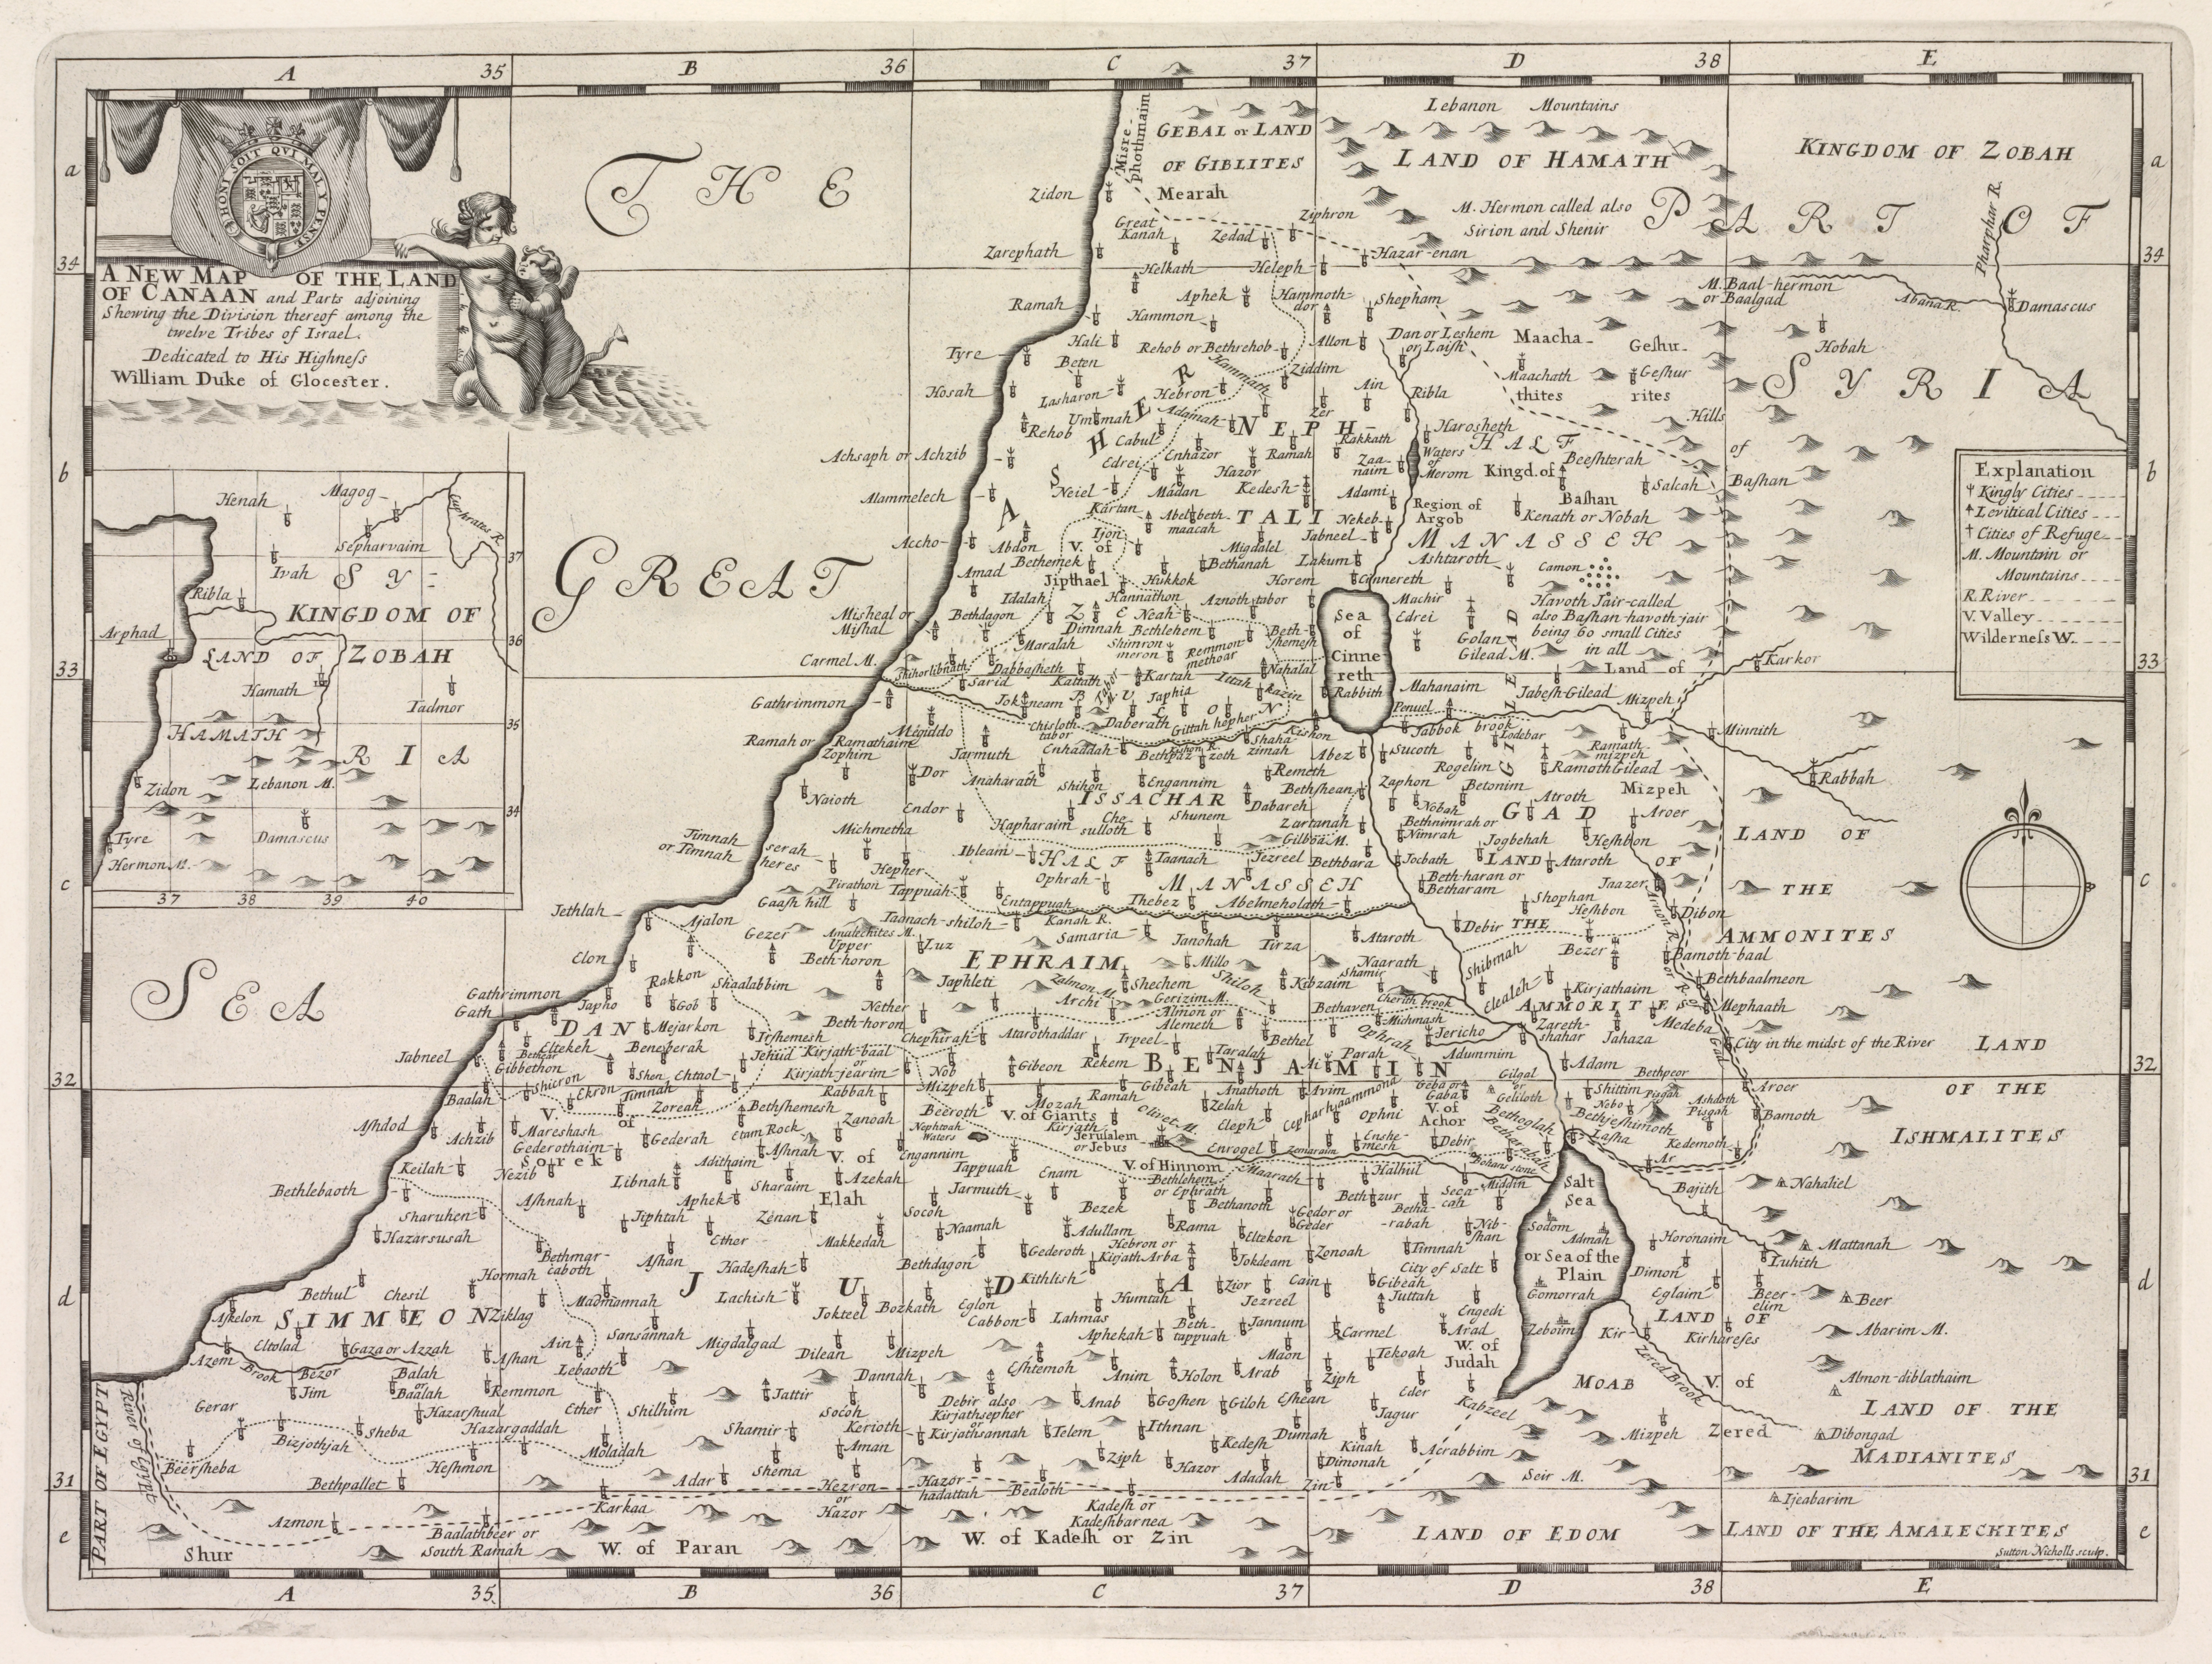 FileA new map of the Land of Canaan and part adjoining shewing